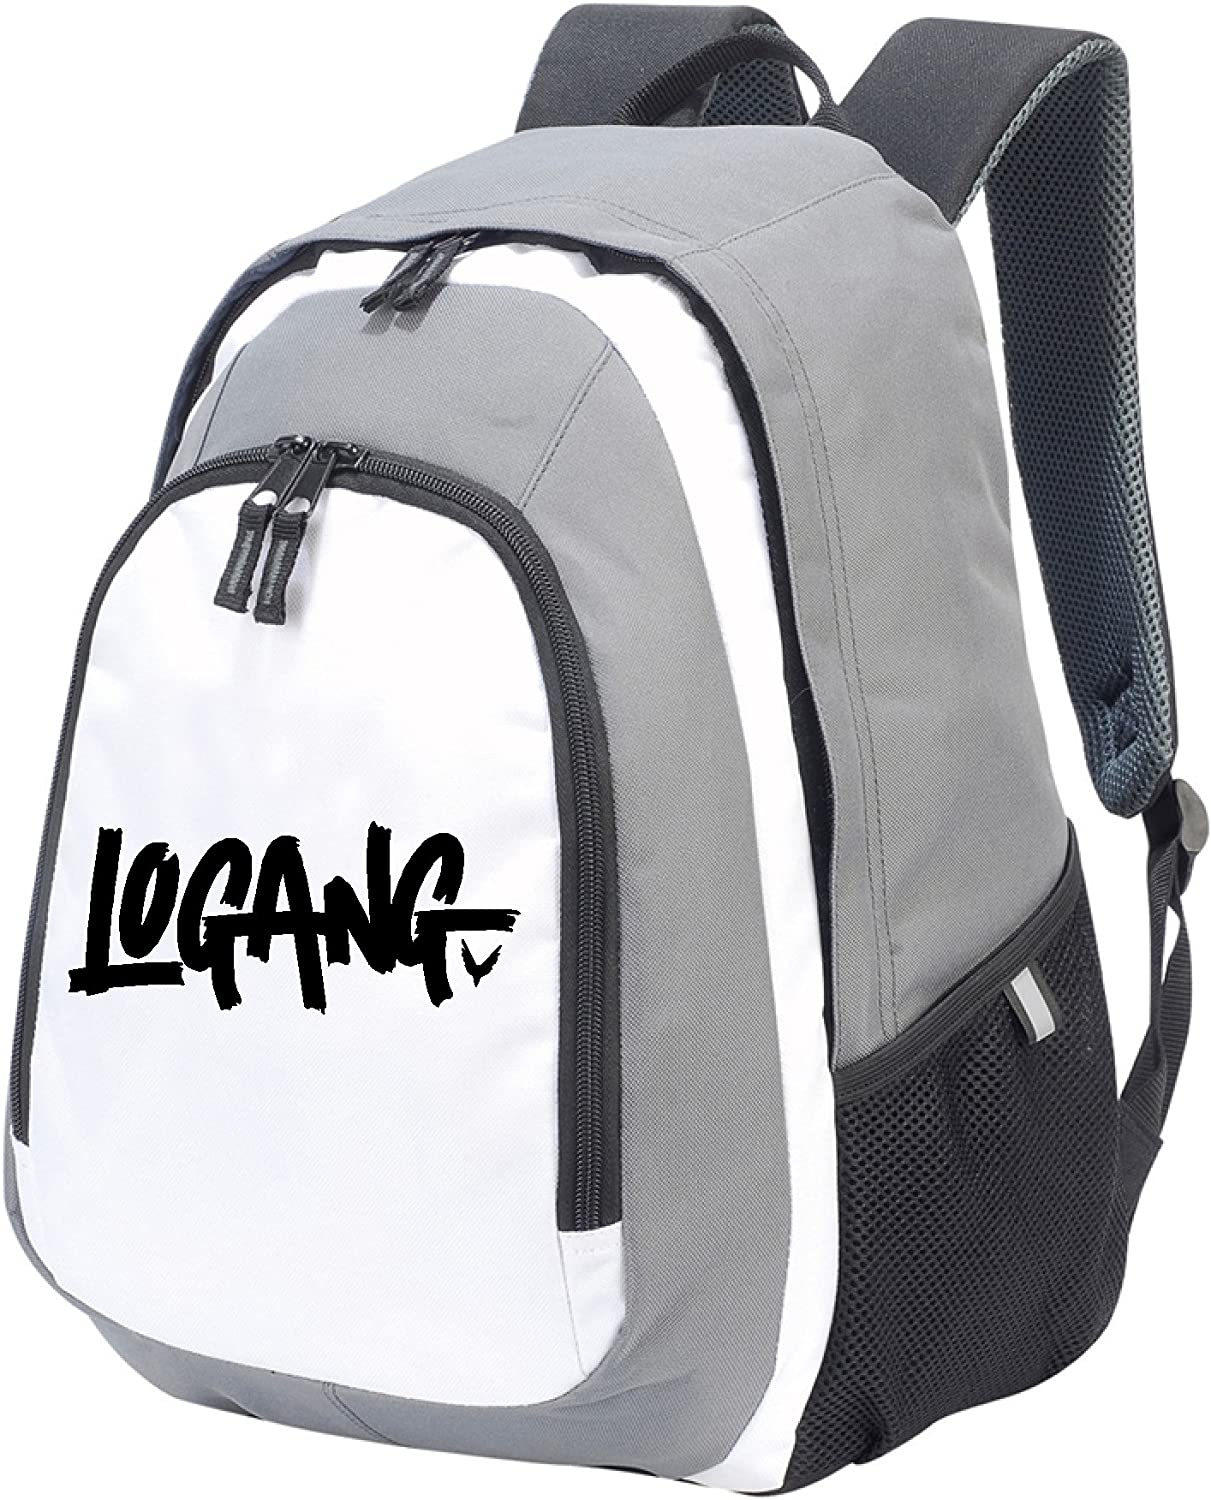 Backpack Jake Paul Logan Maverick Logang Savage bag Youtube College School Bags